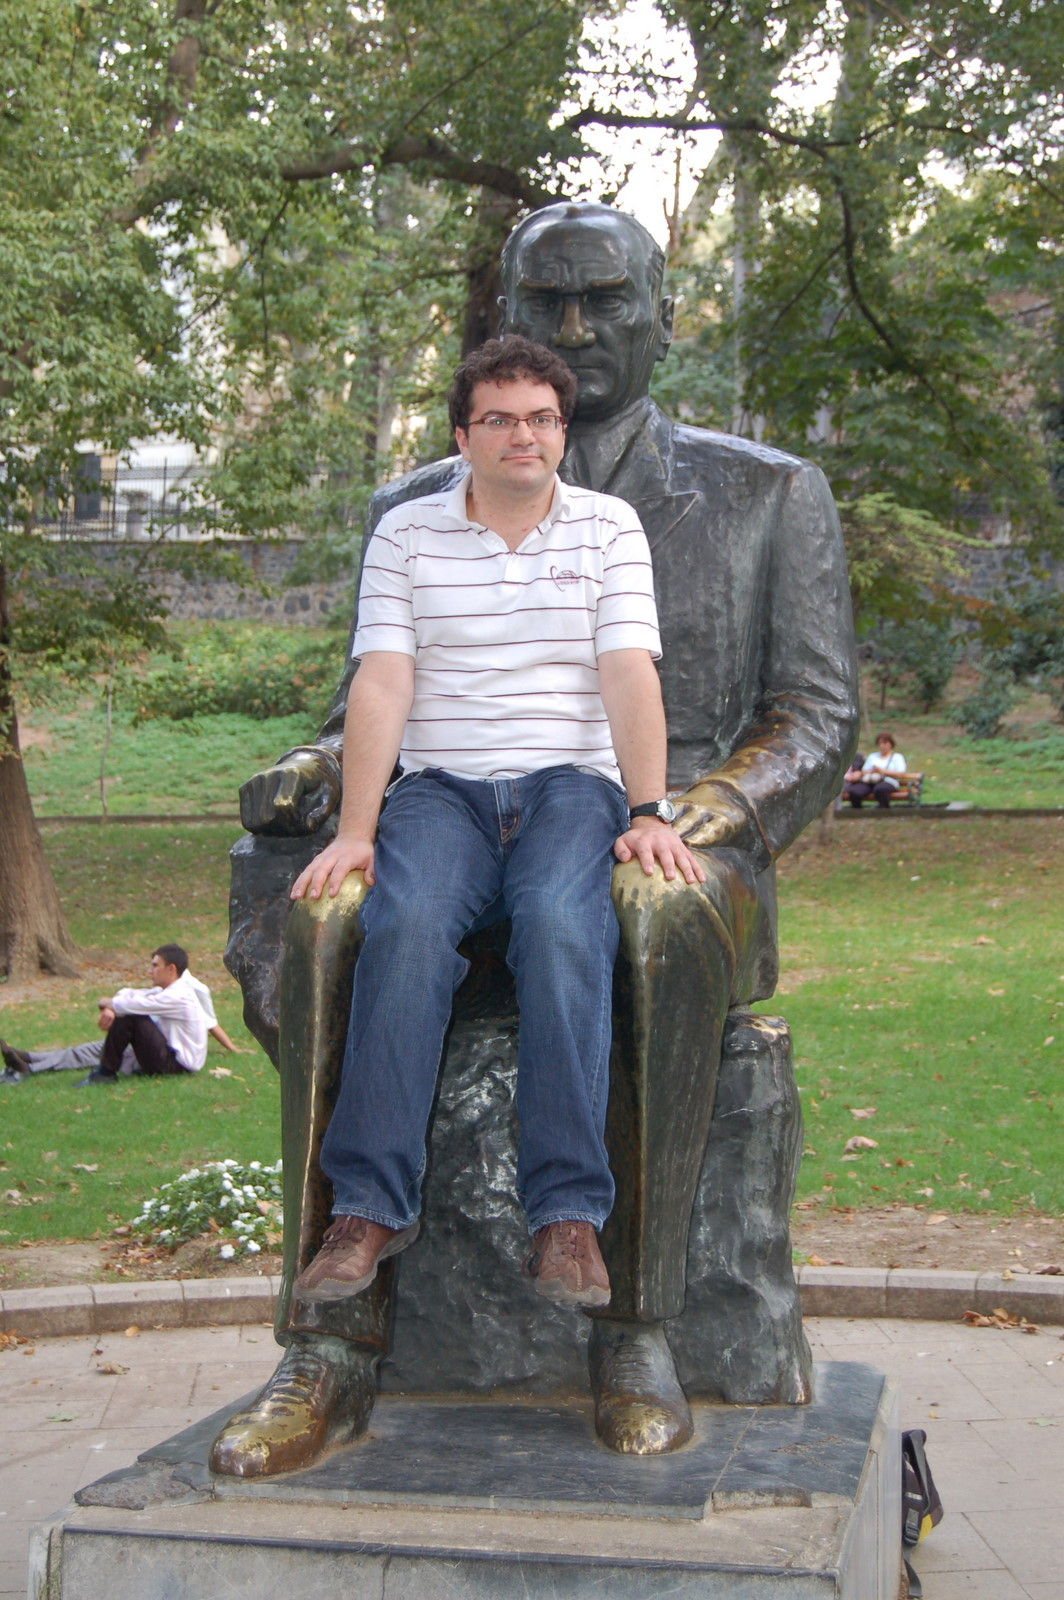 Matt in Ataturk's lap